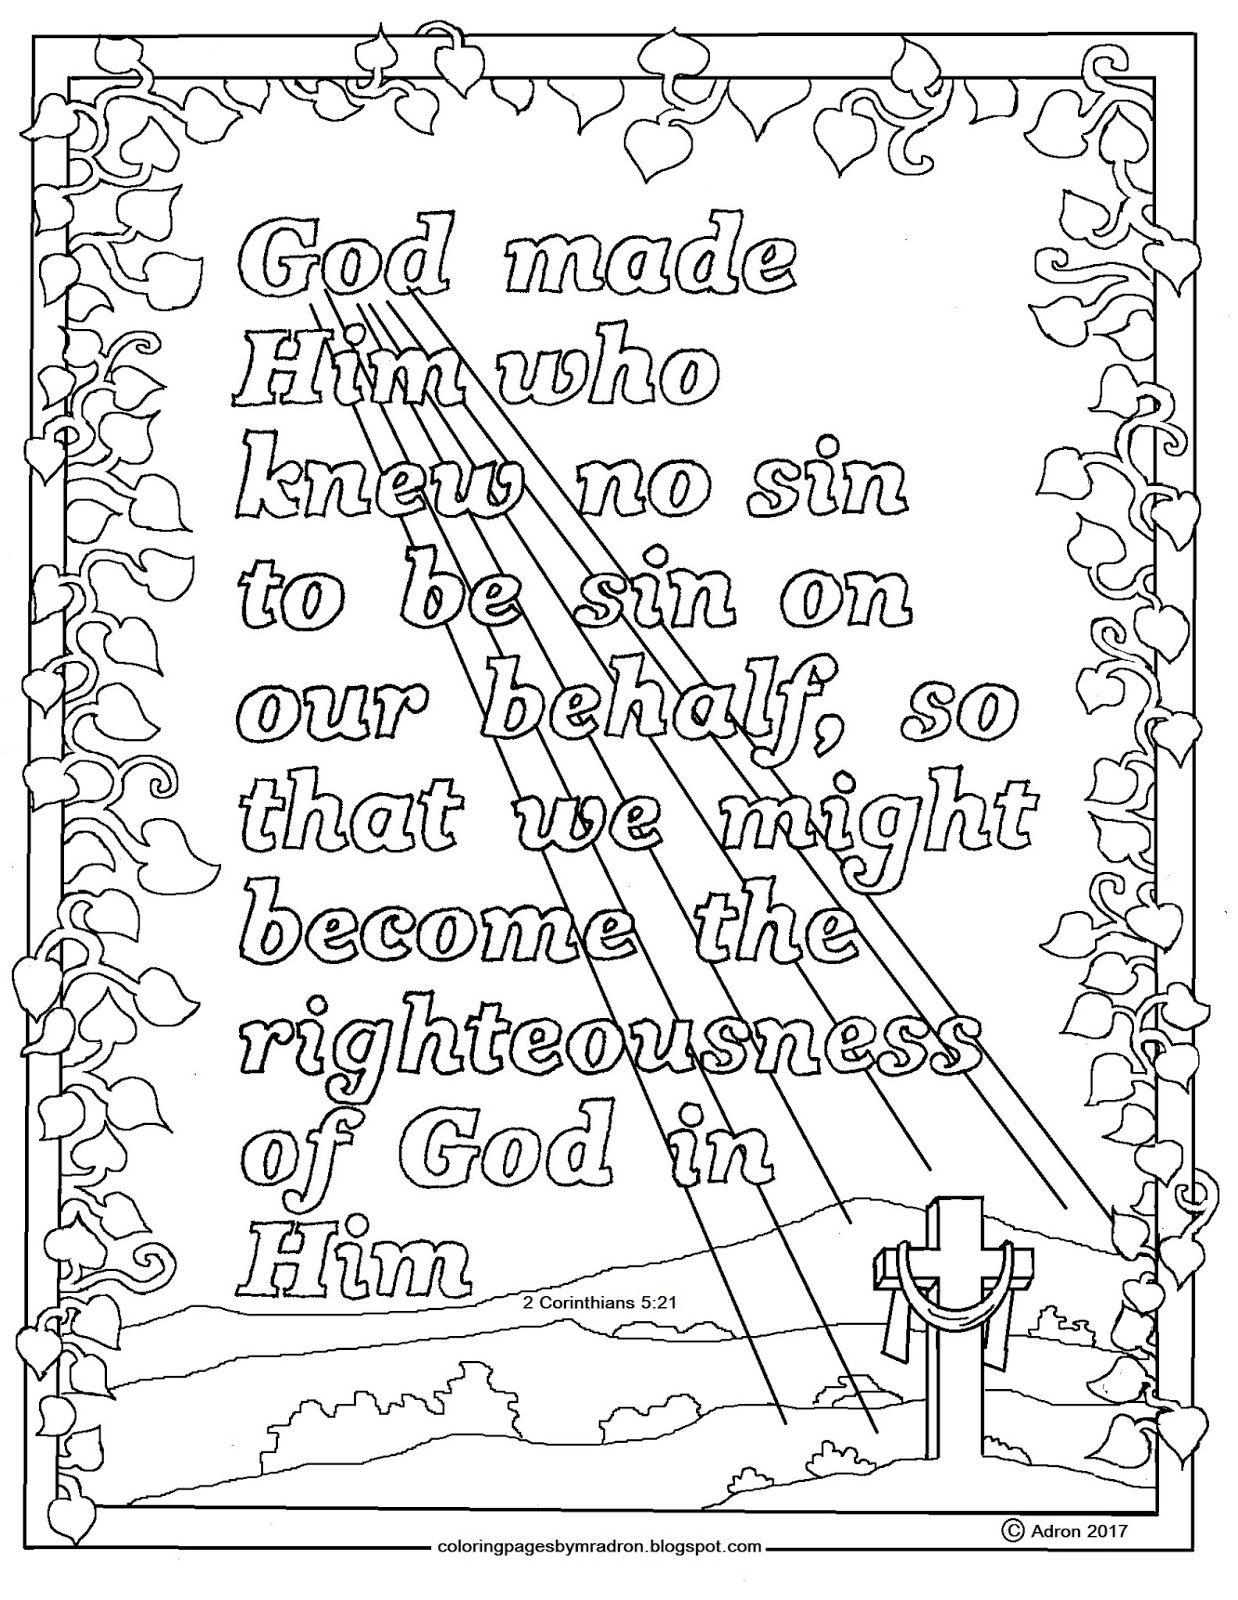 2 Corinthians 5 21 Print And Color Page God Made Him To Be Sin On